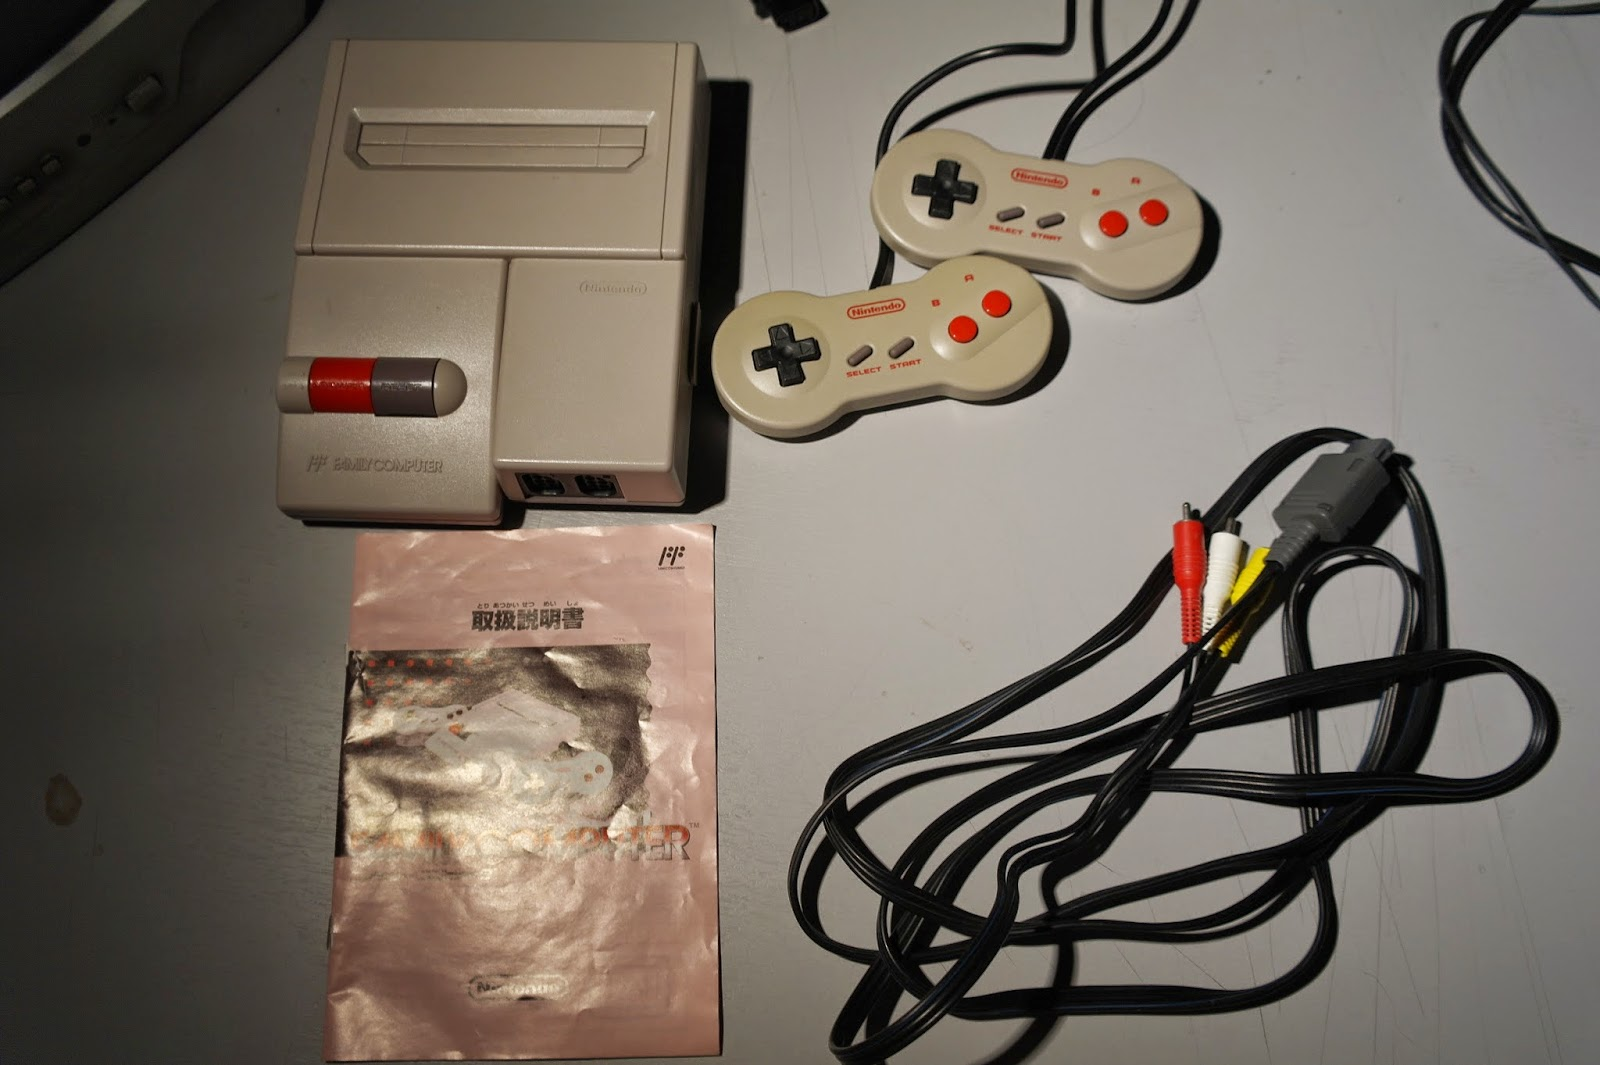 Somerussianmariodude January 2015 Nintendo 64 Av Cable Wiring Diagram The Was Put Here By Myself Originally When I Bought This Console Came In Separate Package There Just Manual